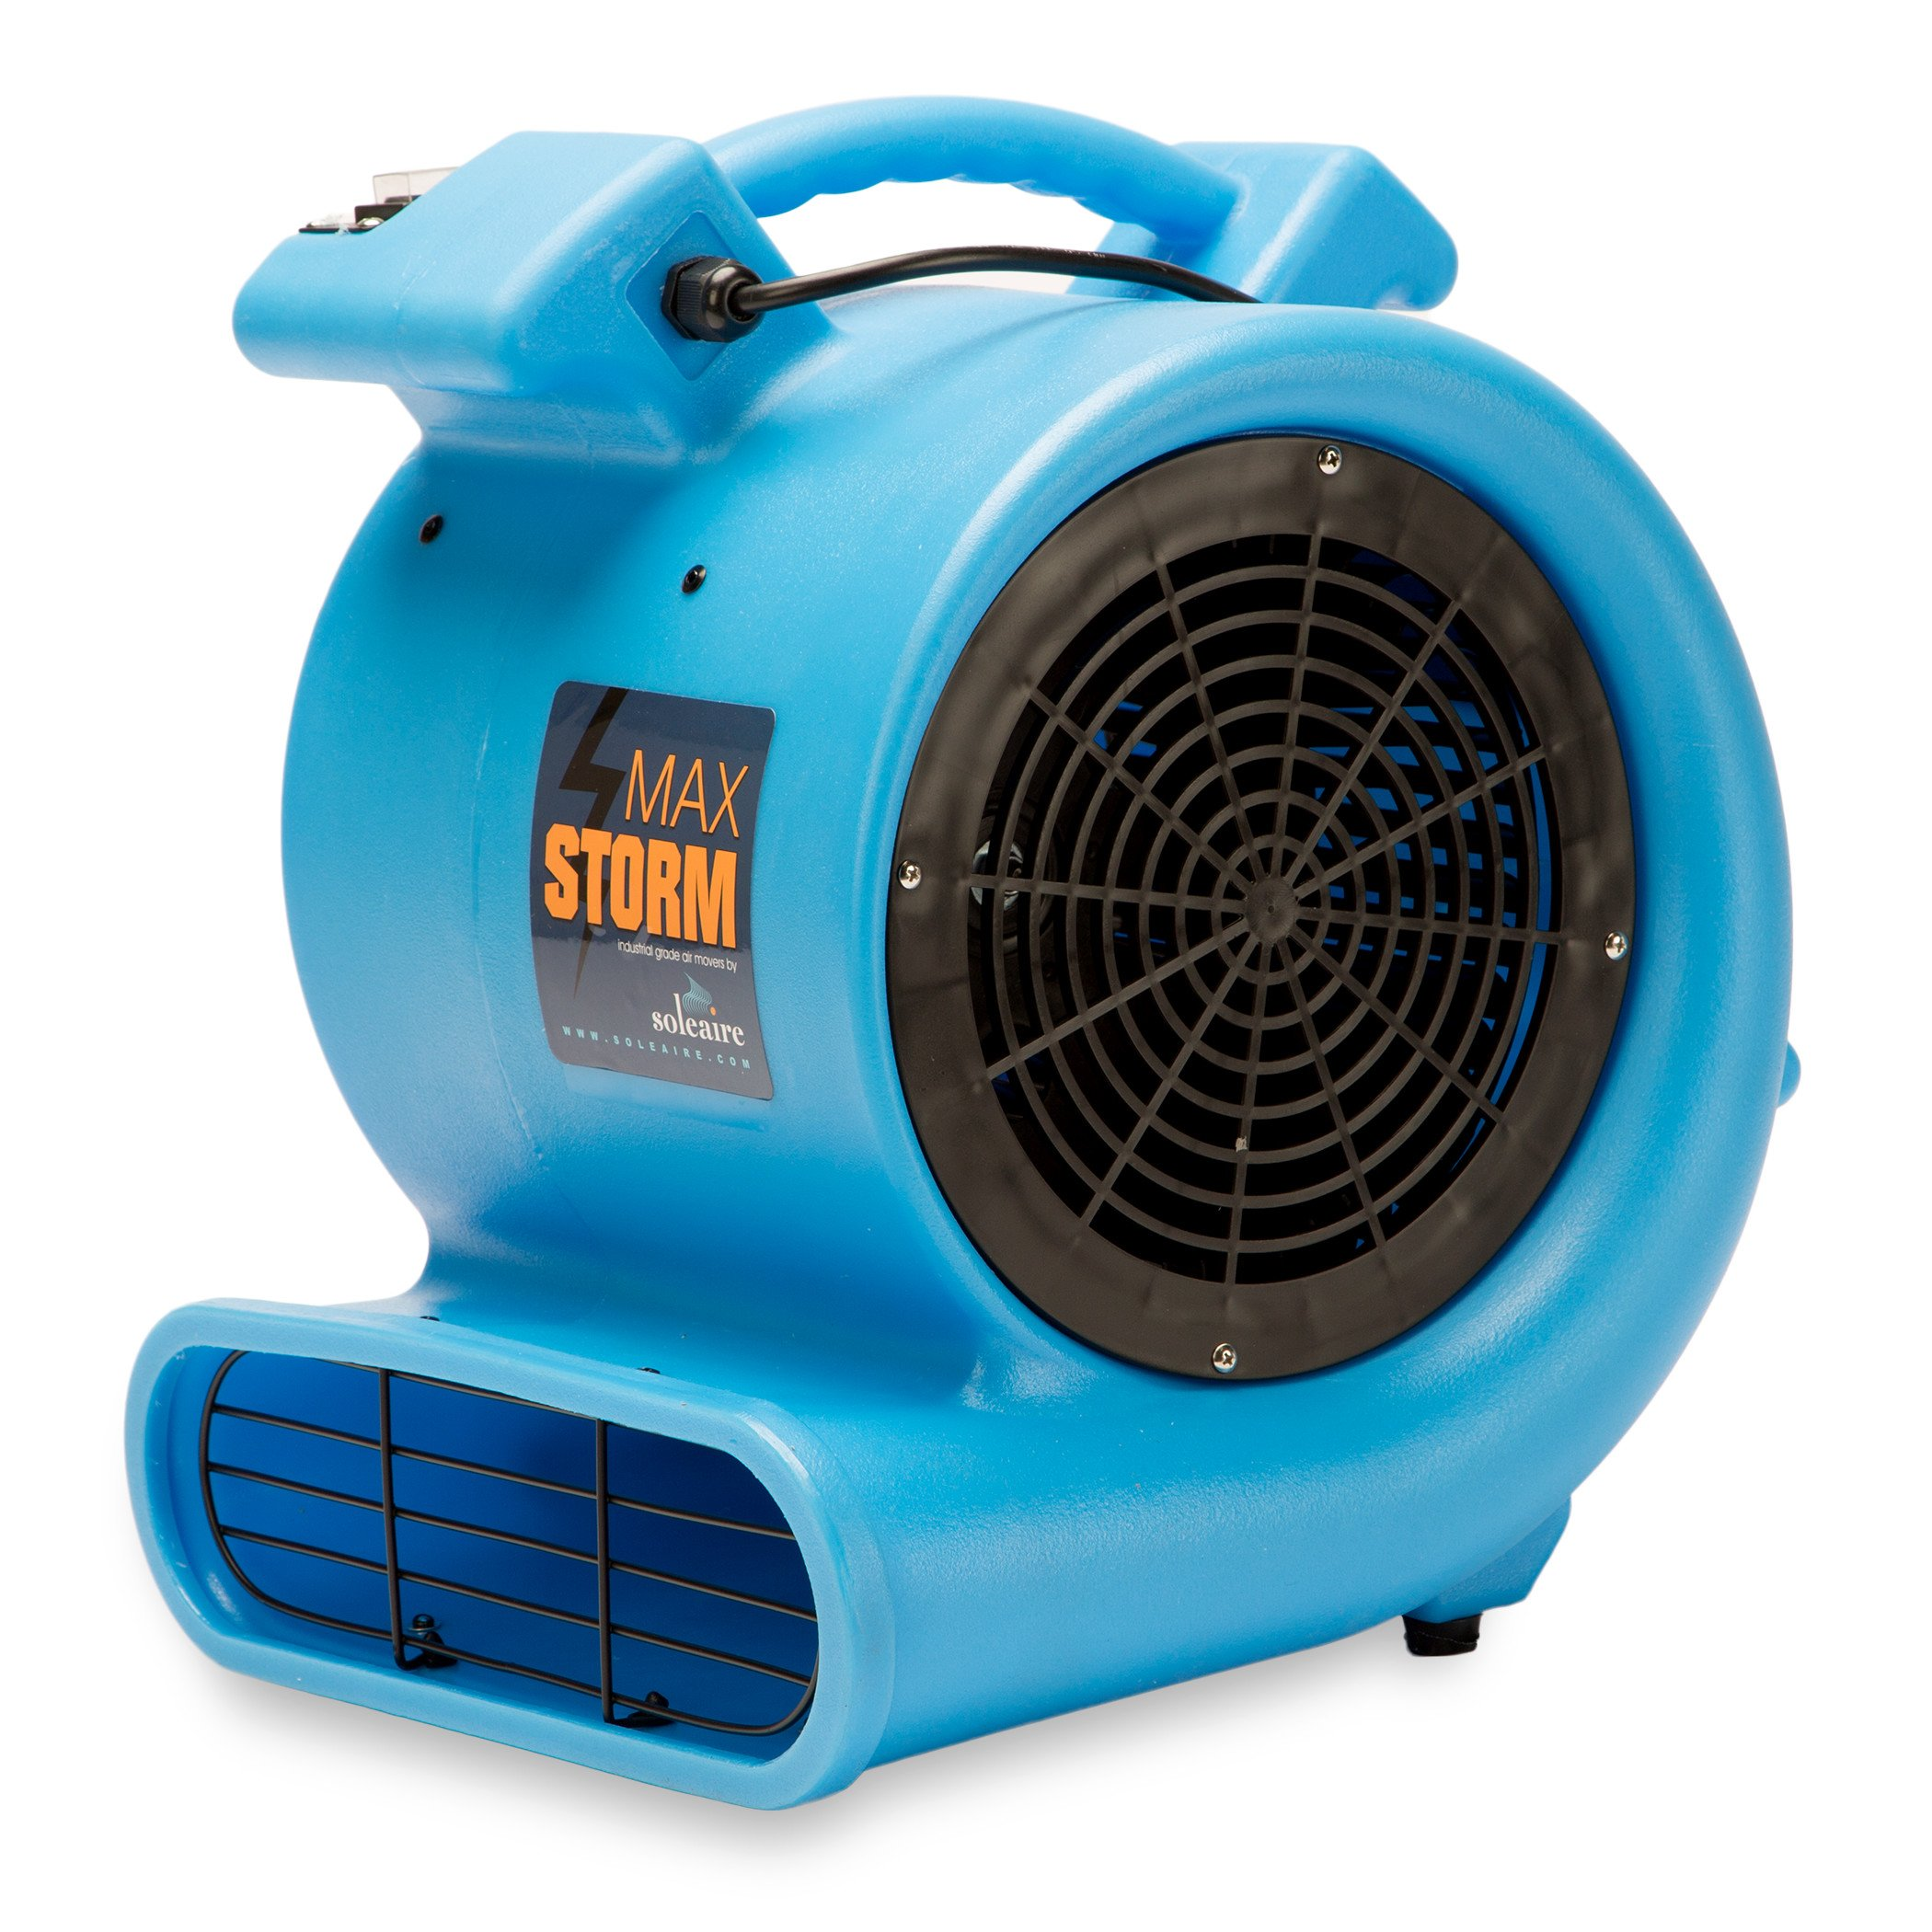 Max Storm 1/2 HP Durable Lightweight Air Mover Carpet Dryer Blower Floor Fan for Pro Janitorial, Blue by Soleaire (Image #2)